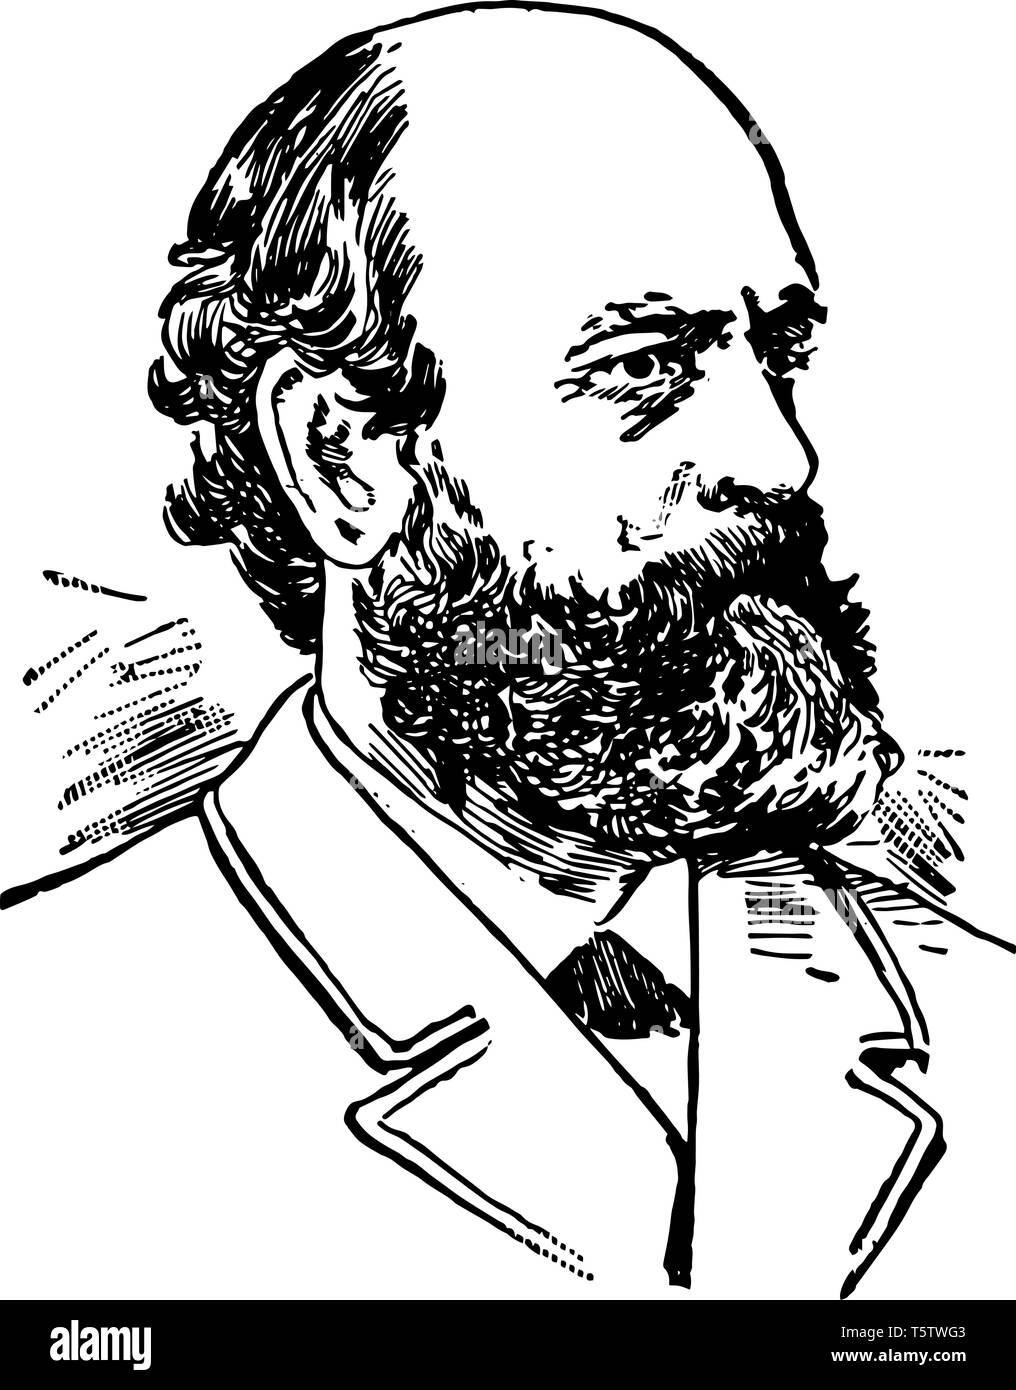 Henry George 1839 to 1897 he was an American political economist and journalist famous for his work Progress and Poverty in 1879 vintage line drawing  - Stock Vector